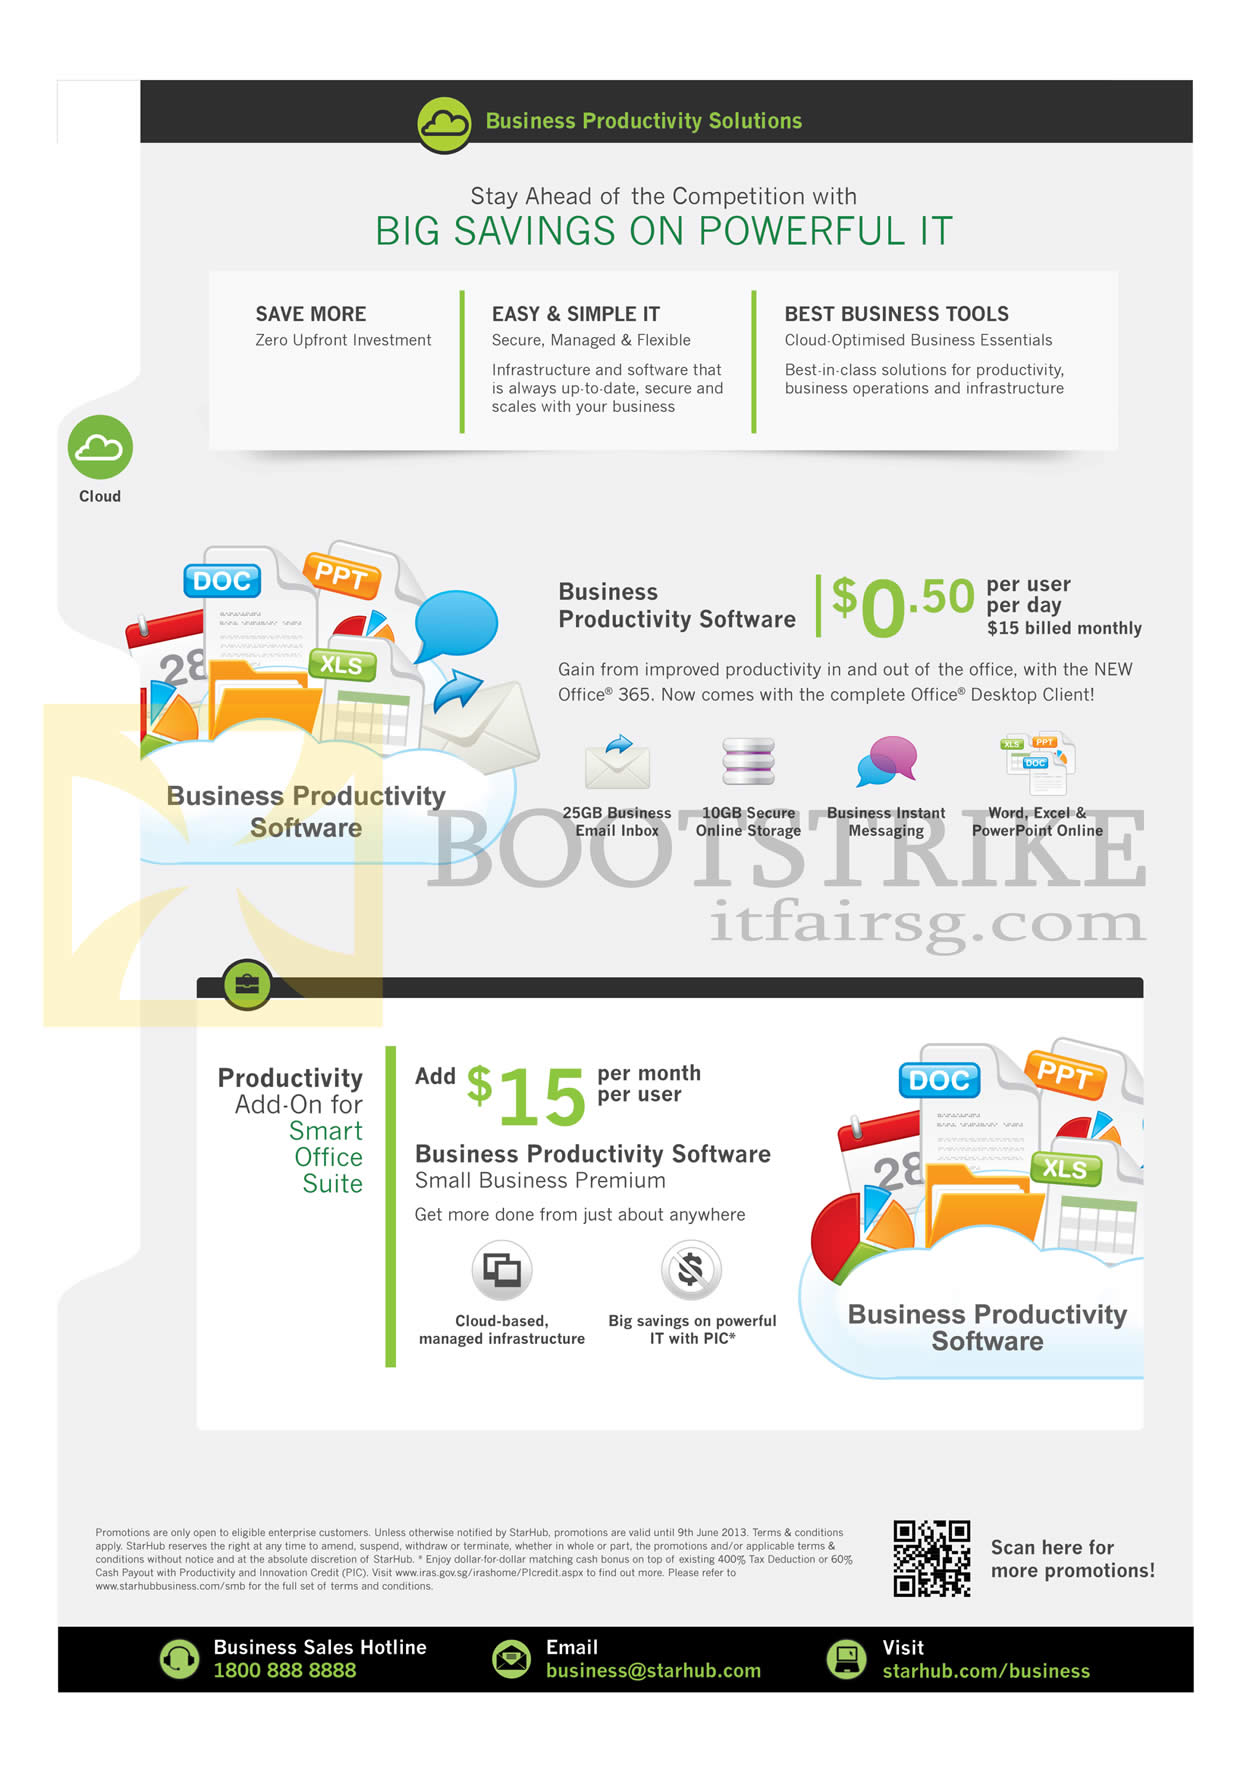 PC SHOW 2013 price list image brochure of Starhub Business Productivity Software